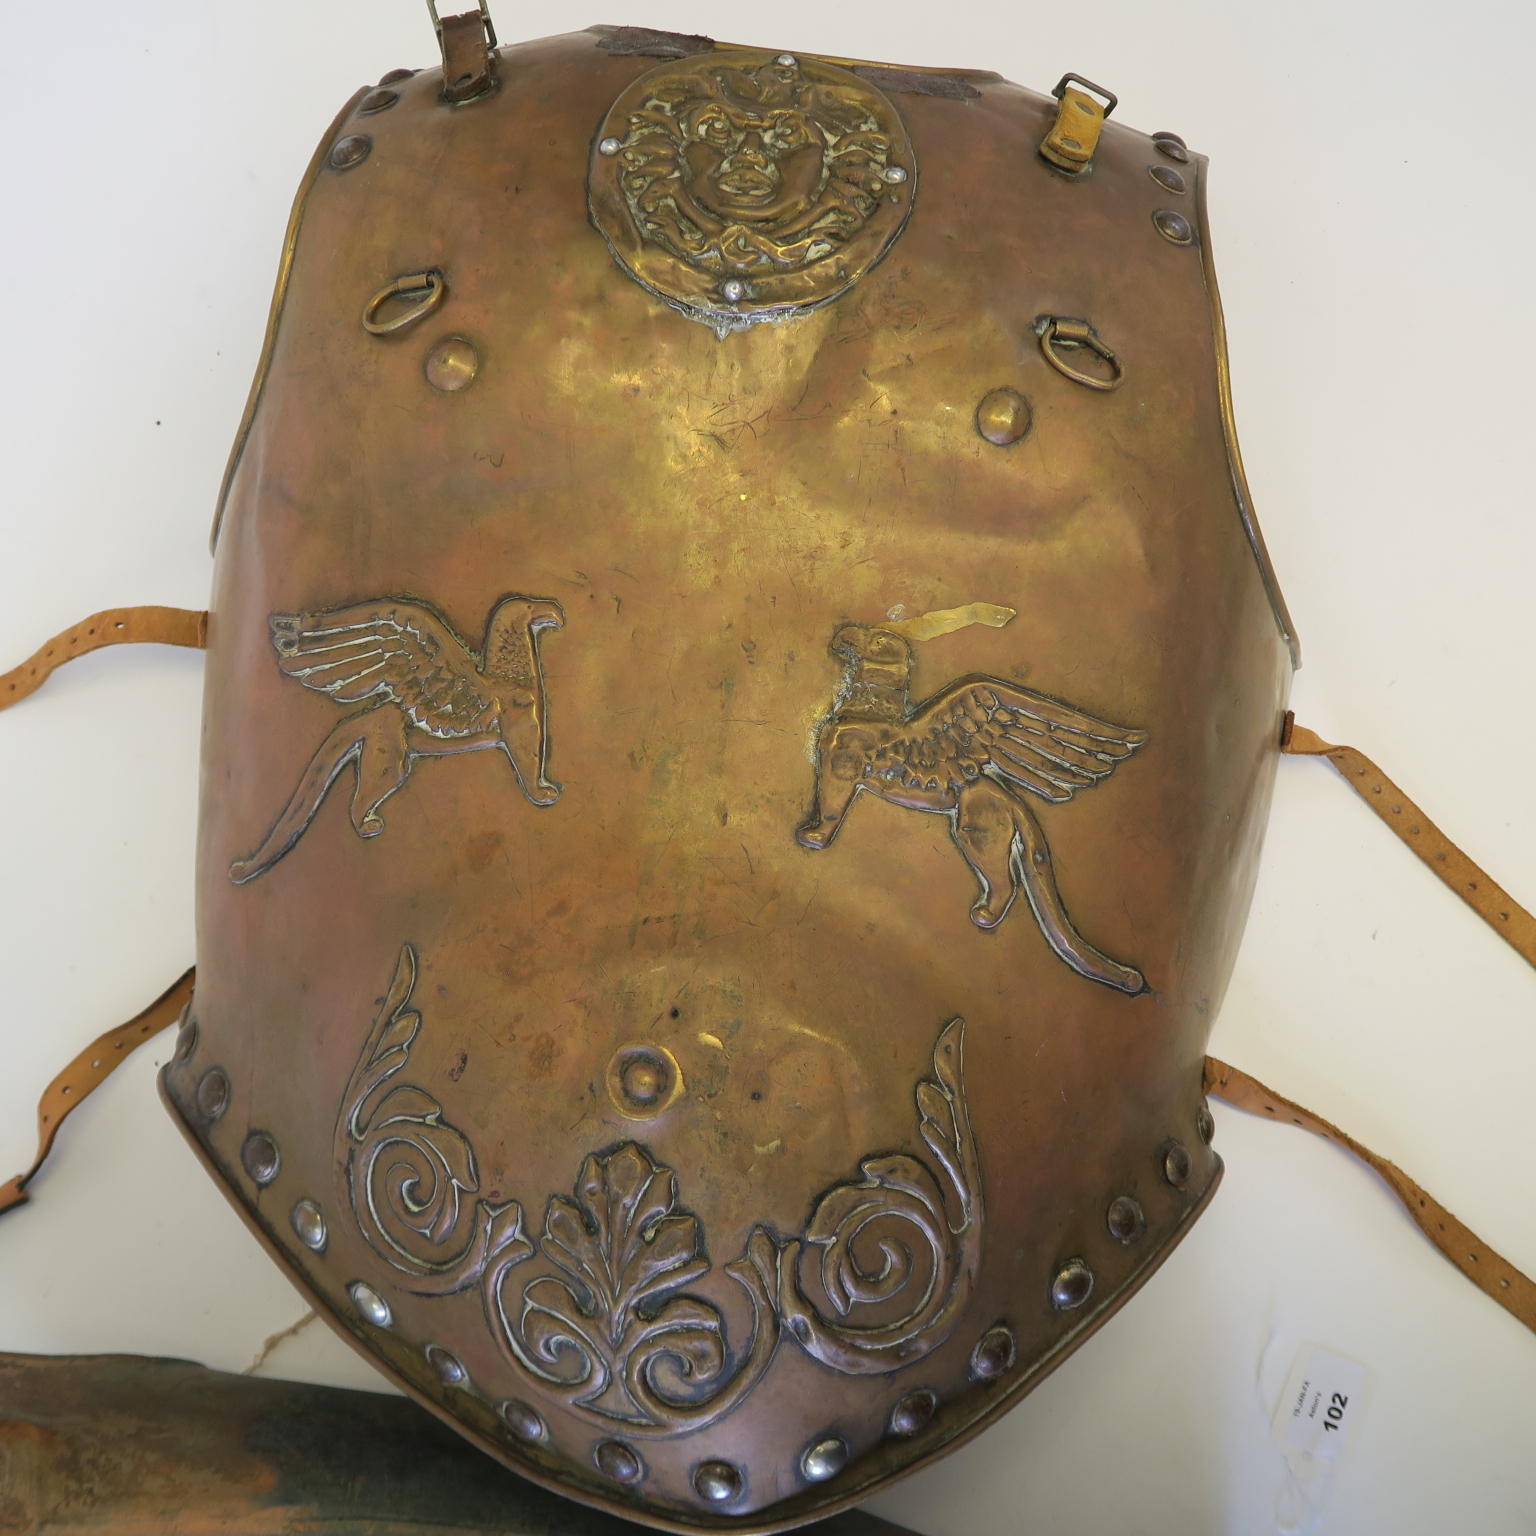 Lot 58 - Metal chest plate movie prop with Medusa head and two griffin's decoration with leather straps and